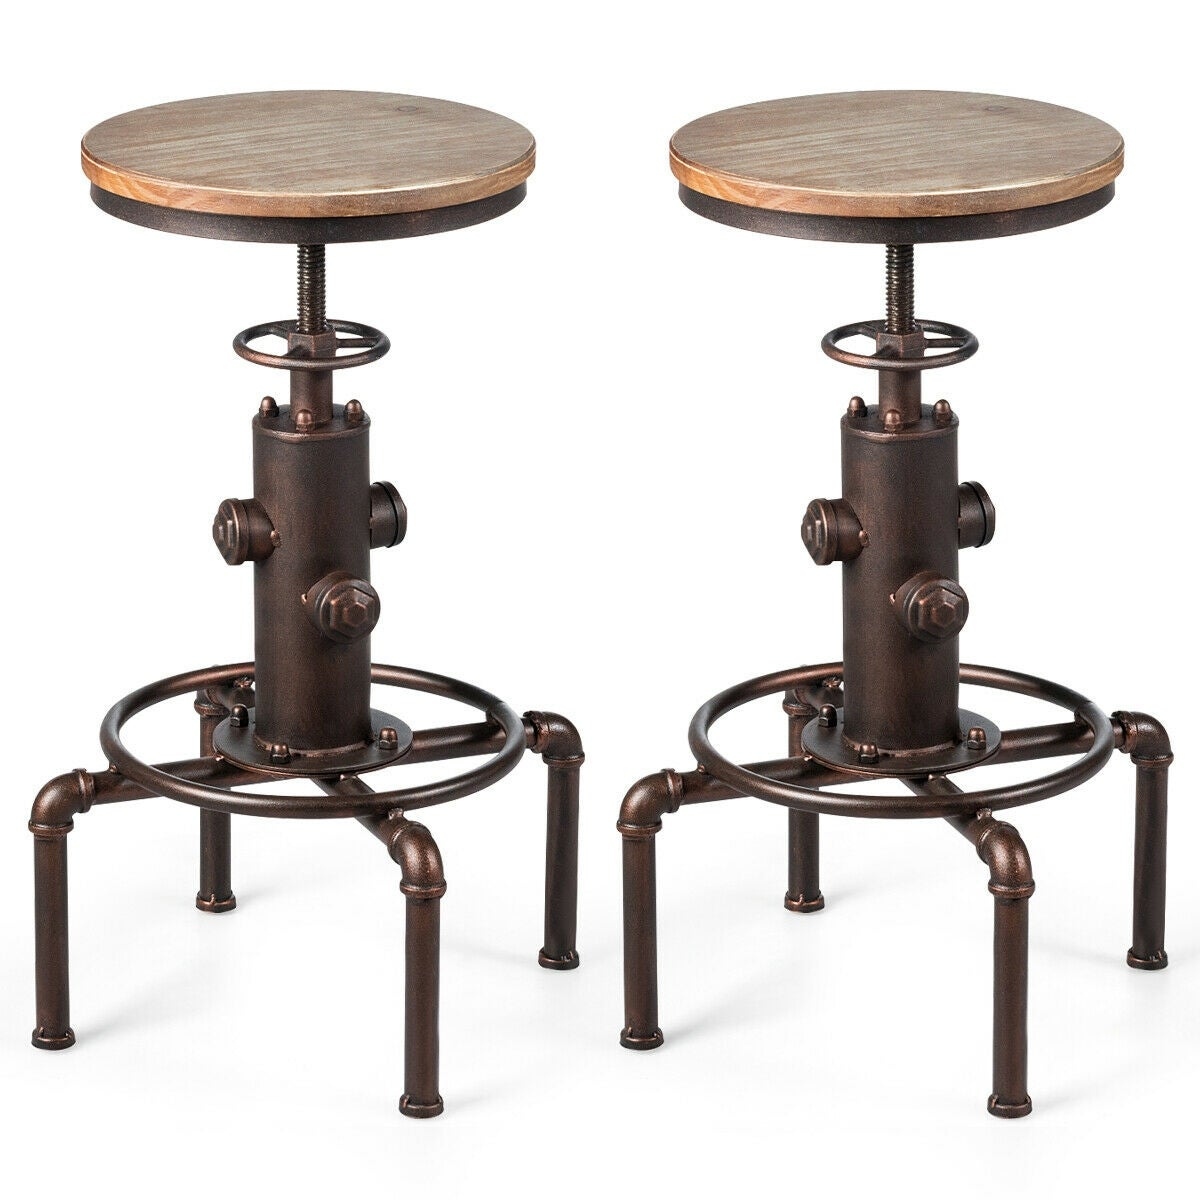 Gymax Set of 2 Industrial Bar Stool Solid Wood Water Pipe Fire Hydrant Design Barstool - as pic